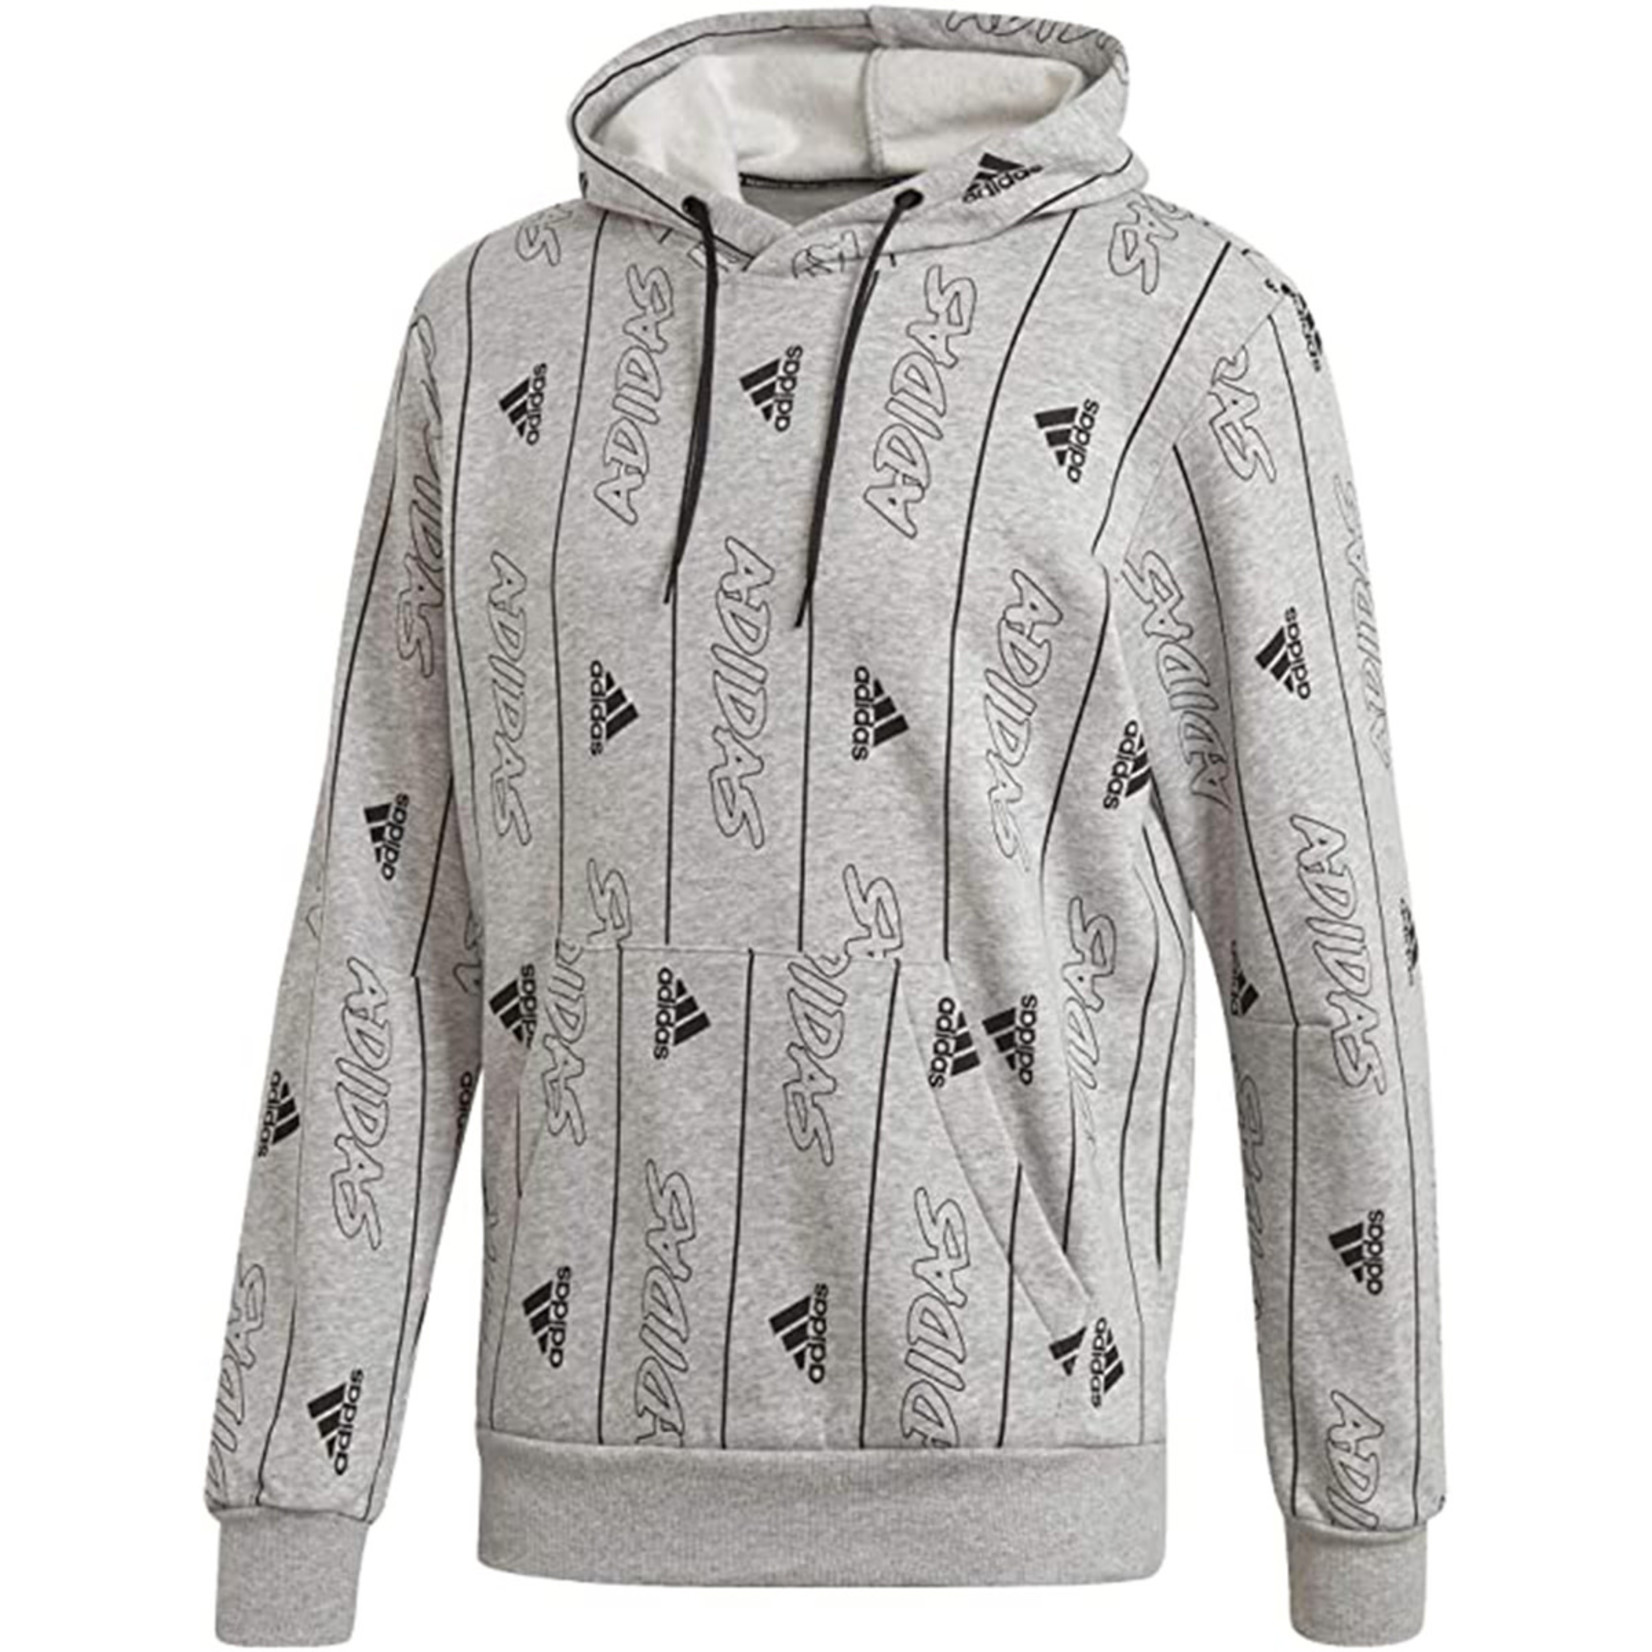 ADIDAS MUST HAVES GRAPHIC PULLOVER HOODIE